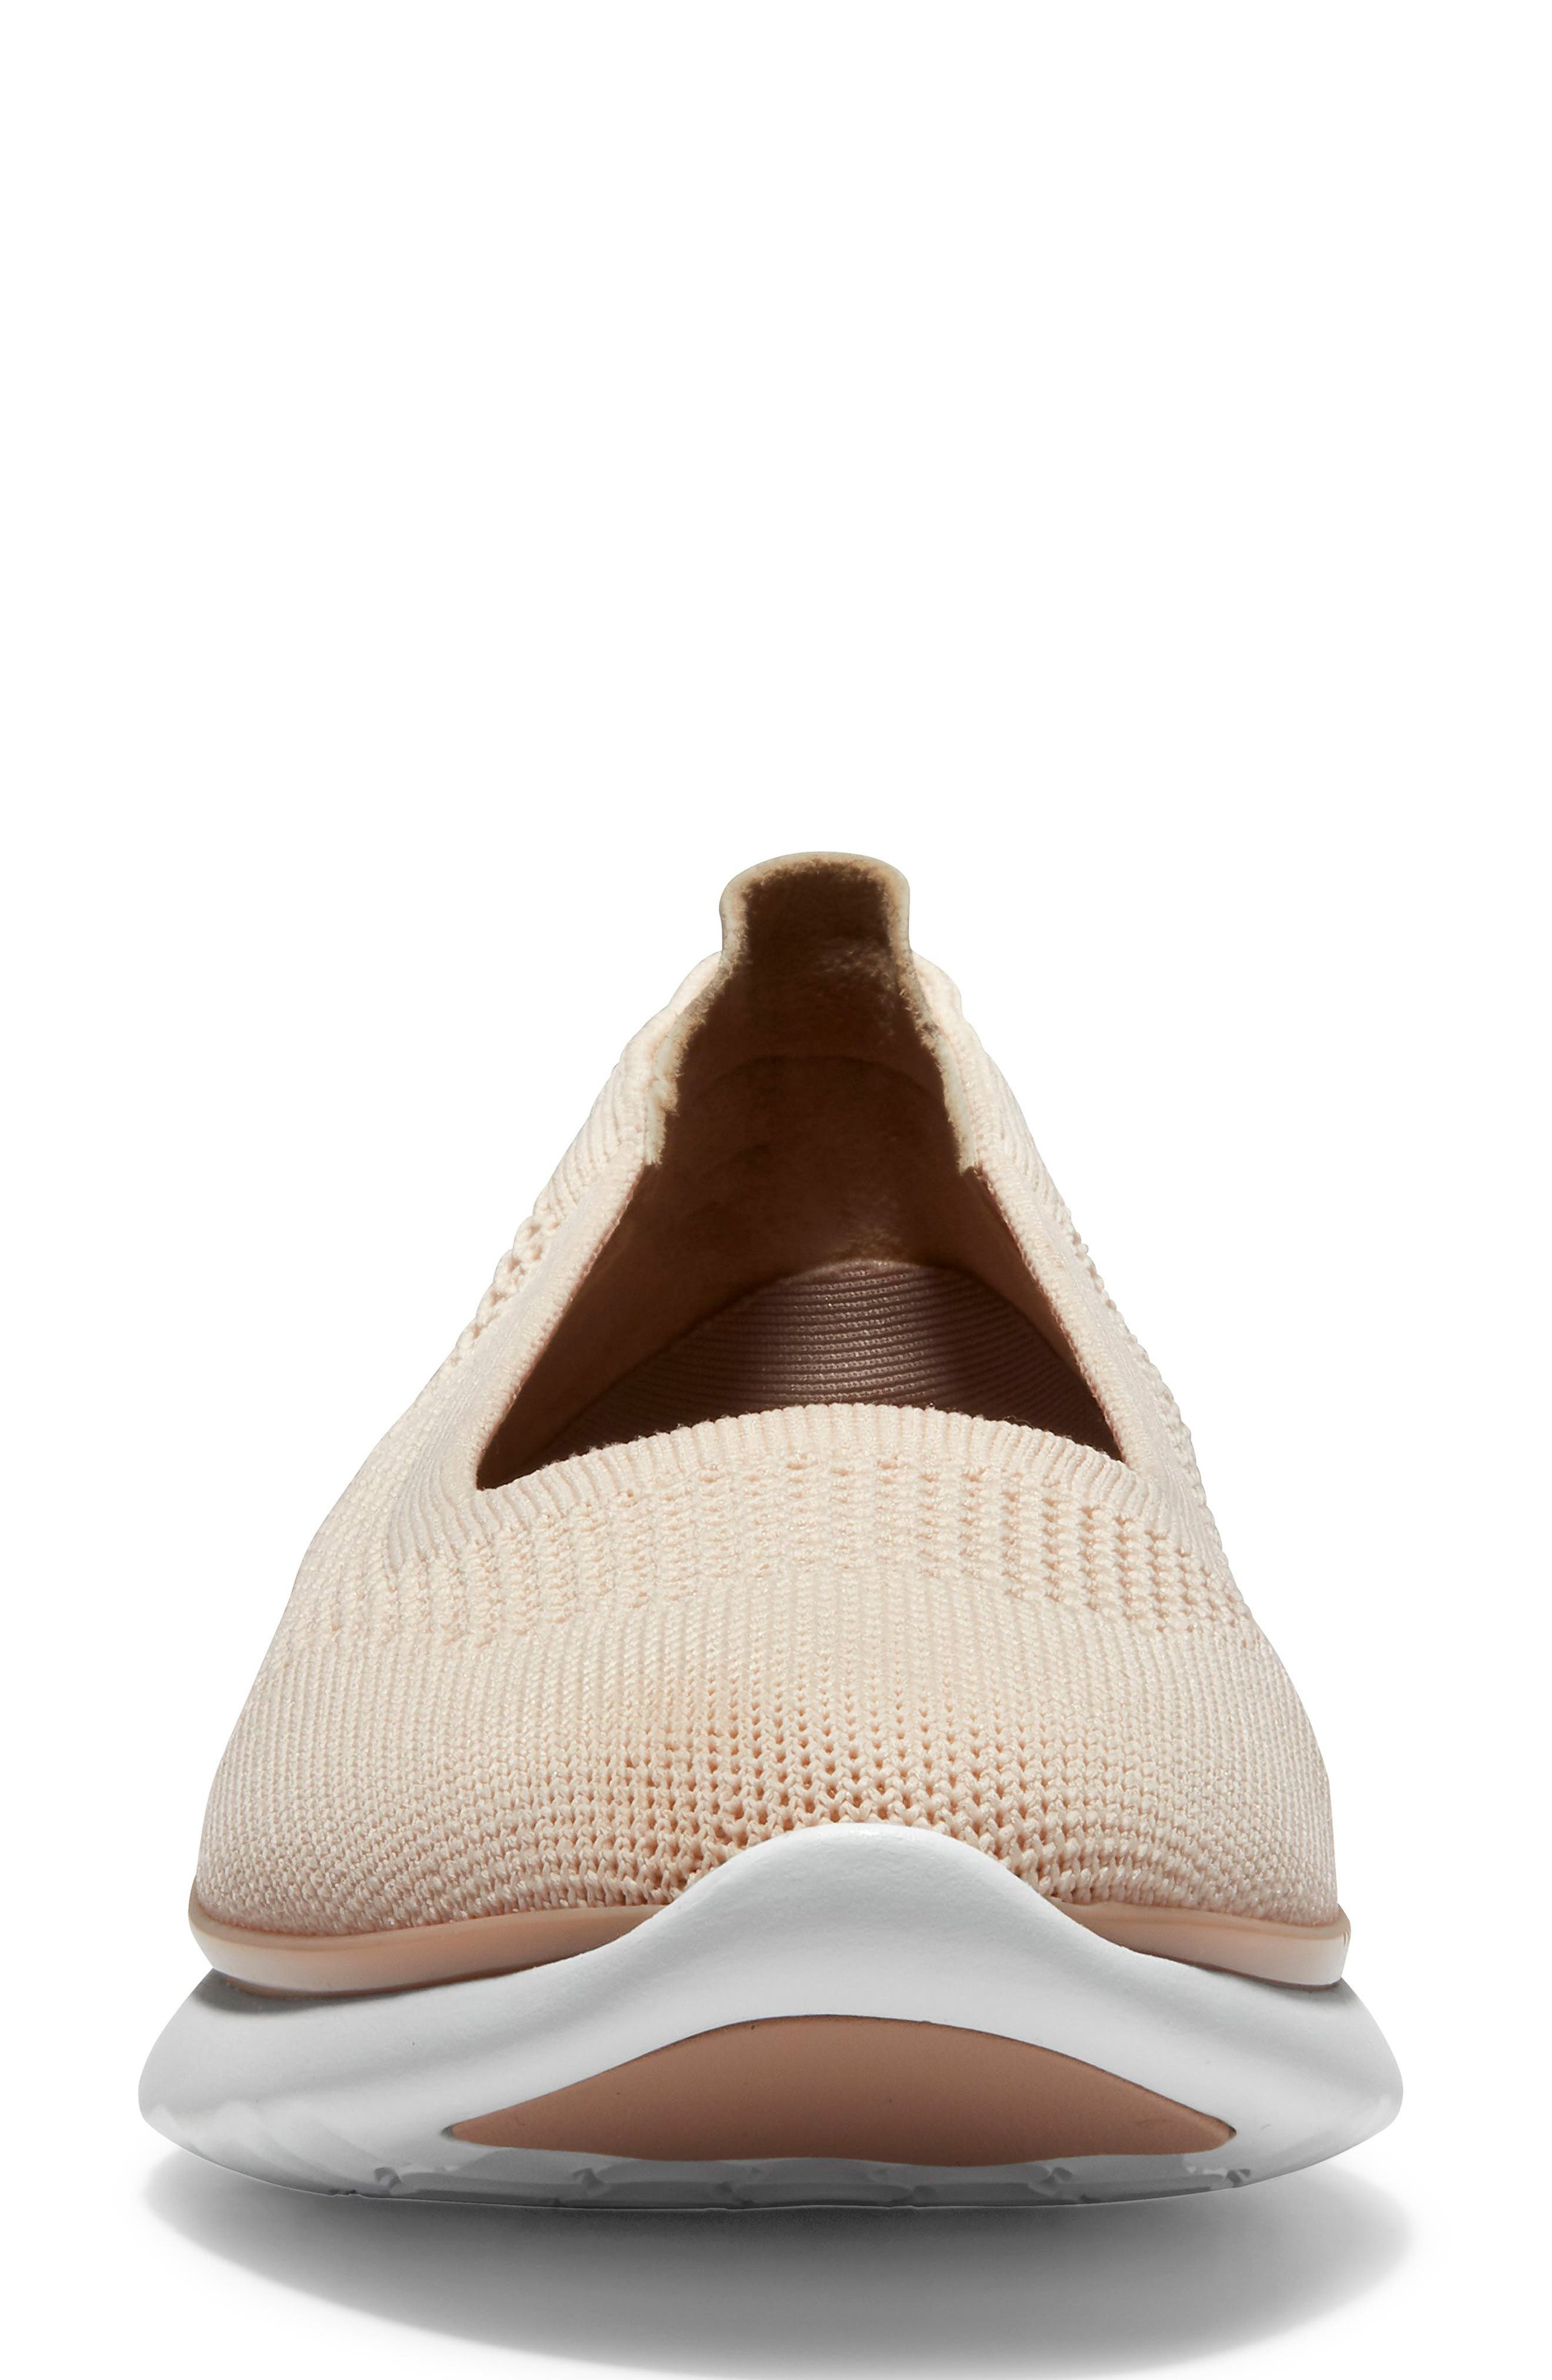 COLE HAAN, ZeroGrand Knit Sneaker, Alternate thumbnail 4, color, SAND/ ROSE KNIT/ LEATHER